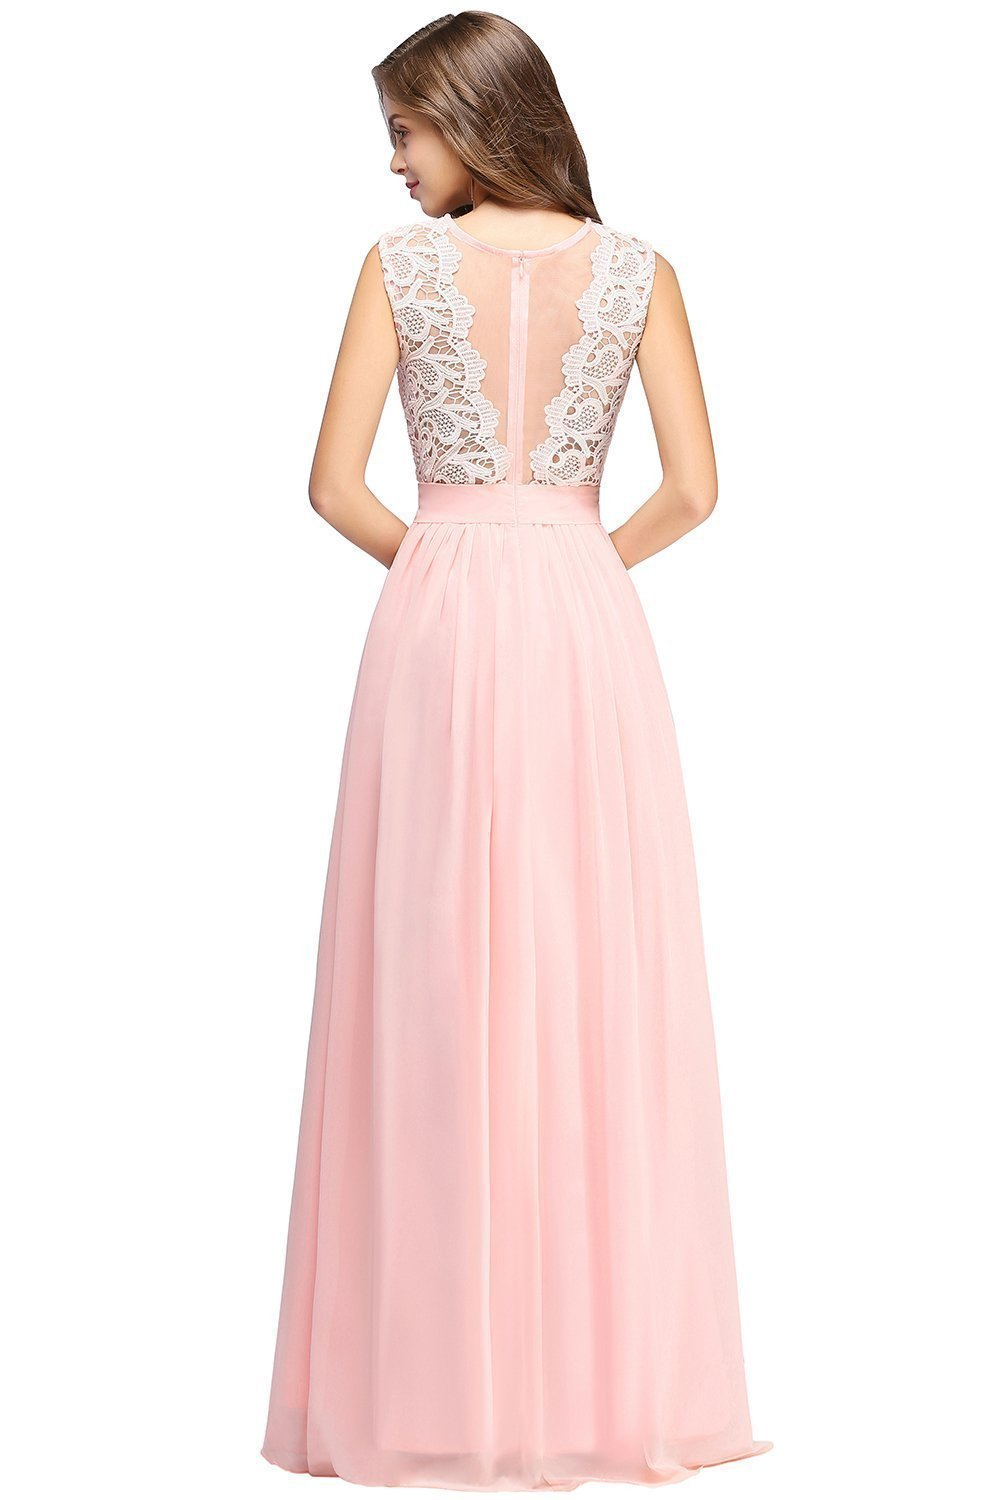 Buy chiffon dress lace evening dresses formal party dress sleeveless